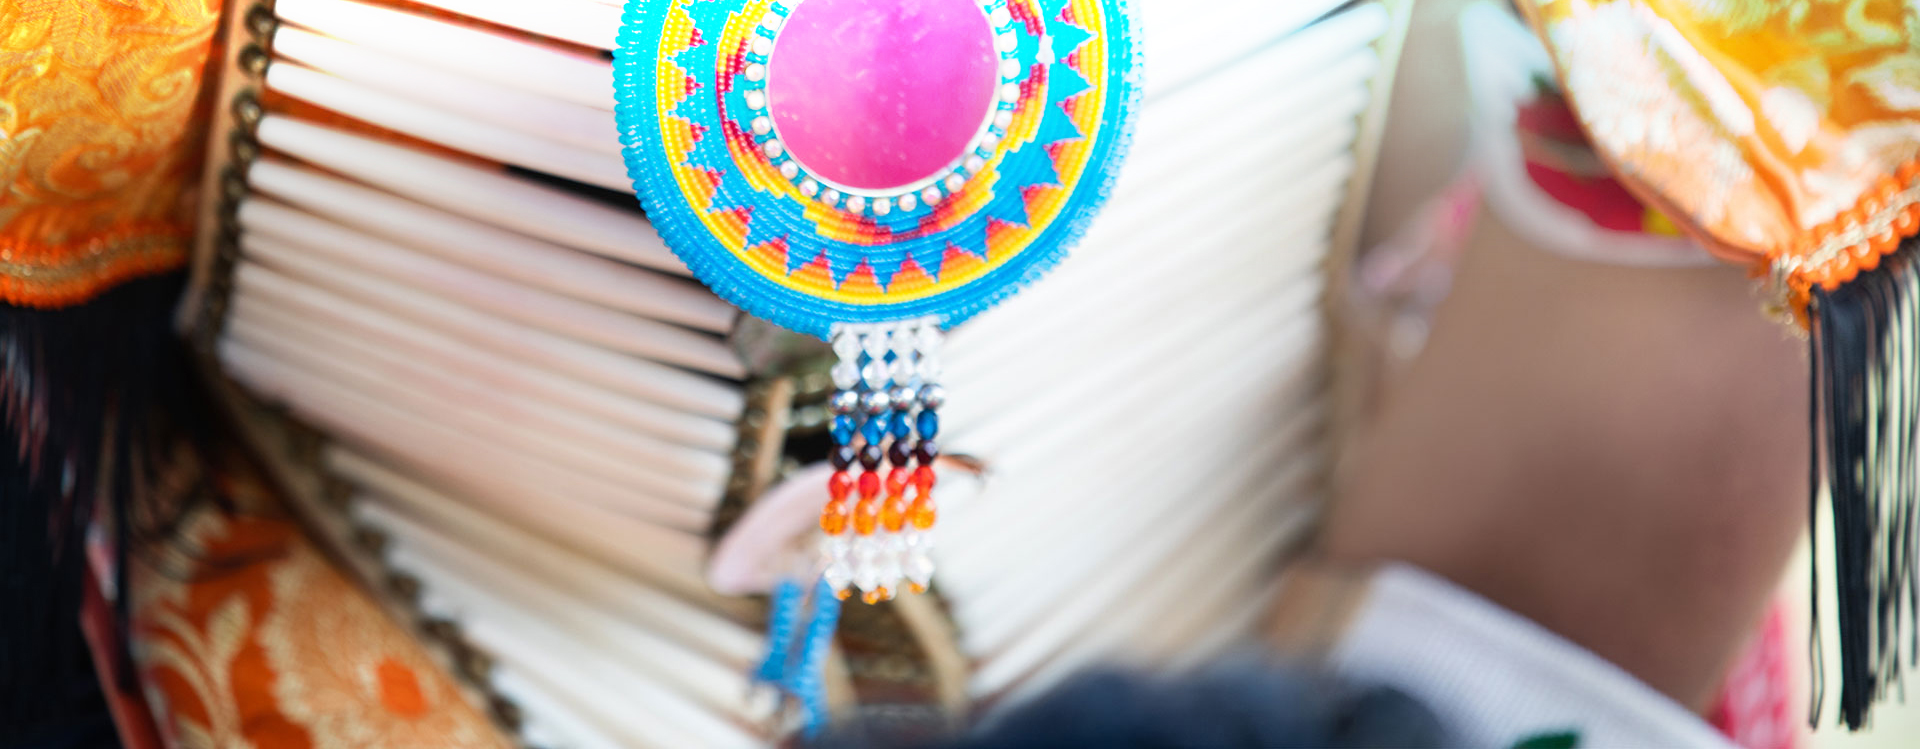 Triia - Image of Native American Jewelry and Clothing